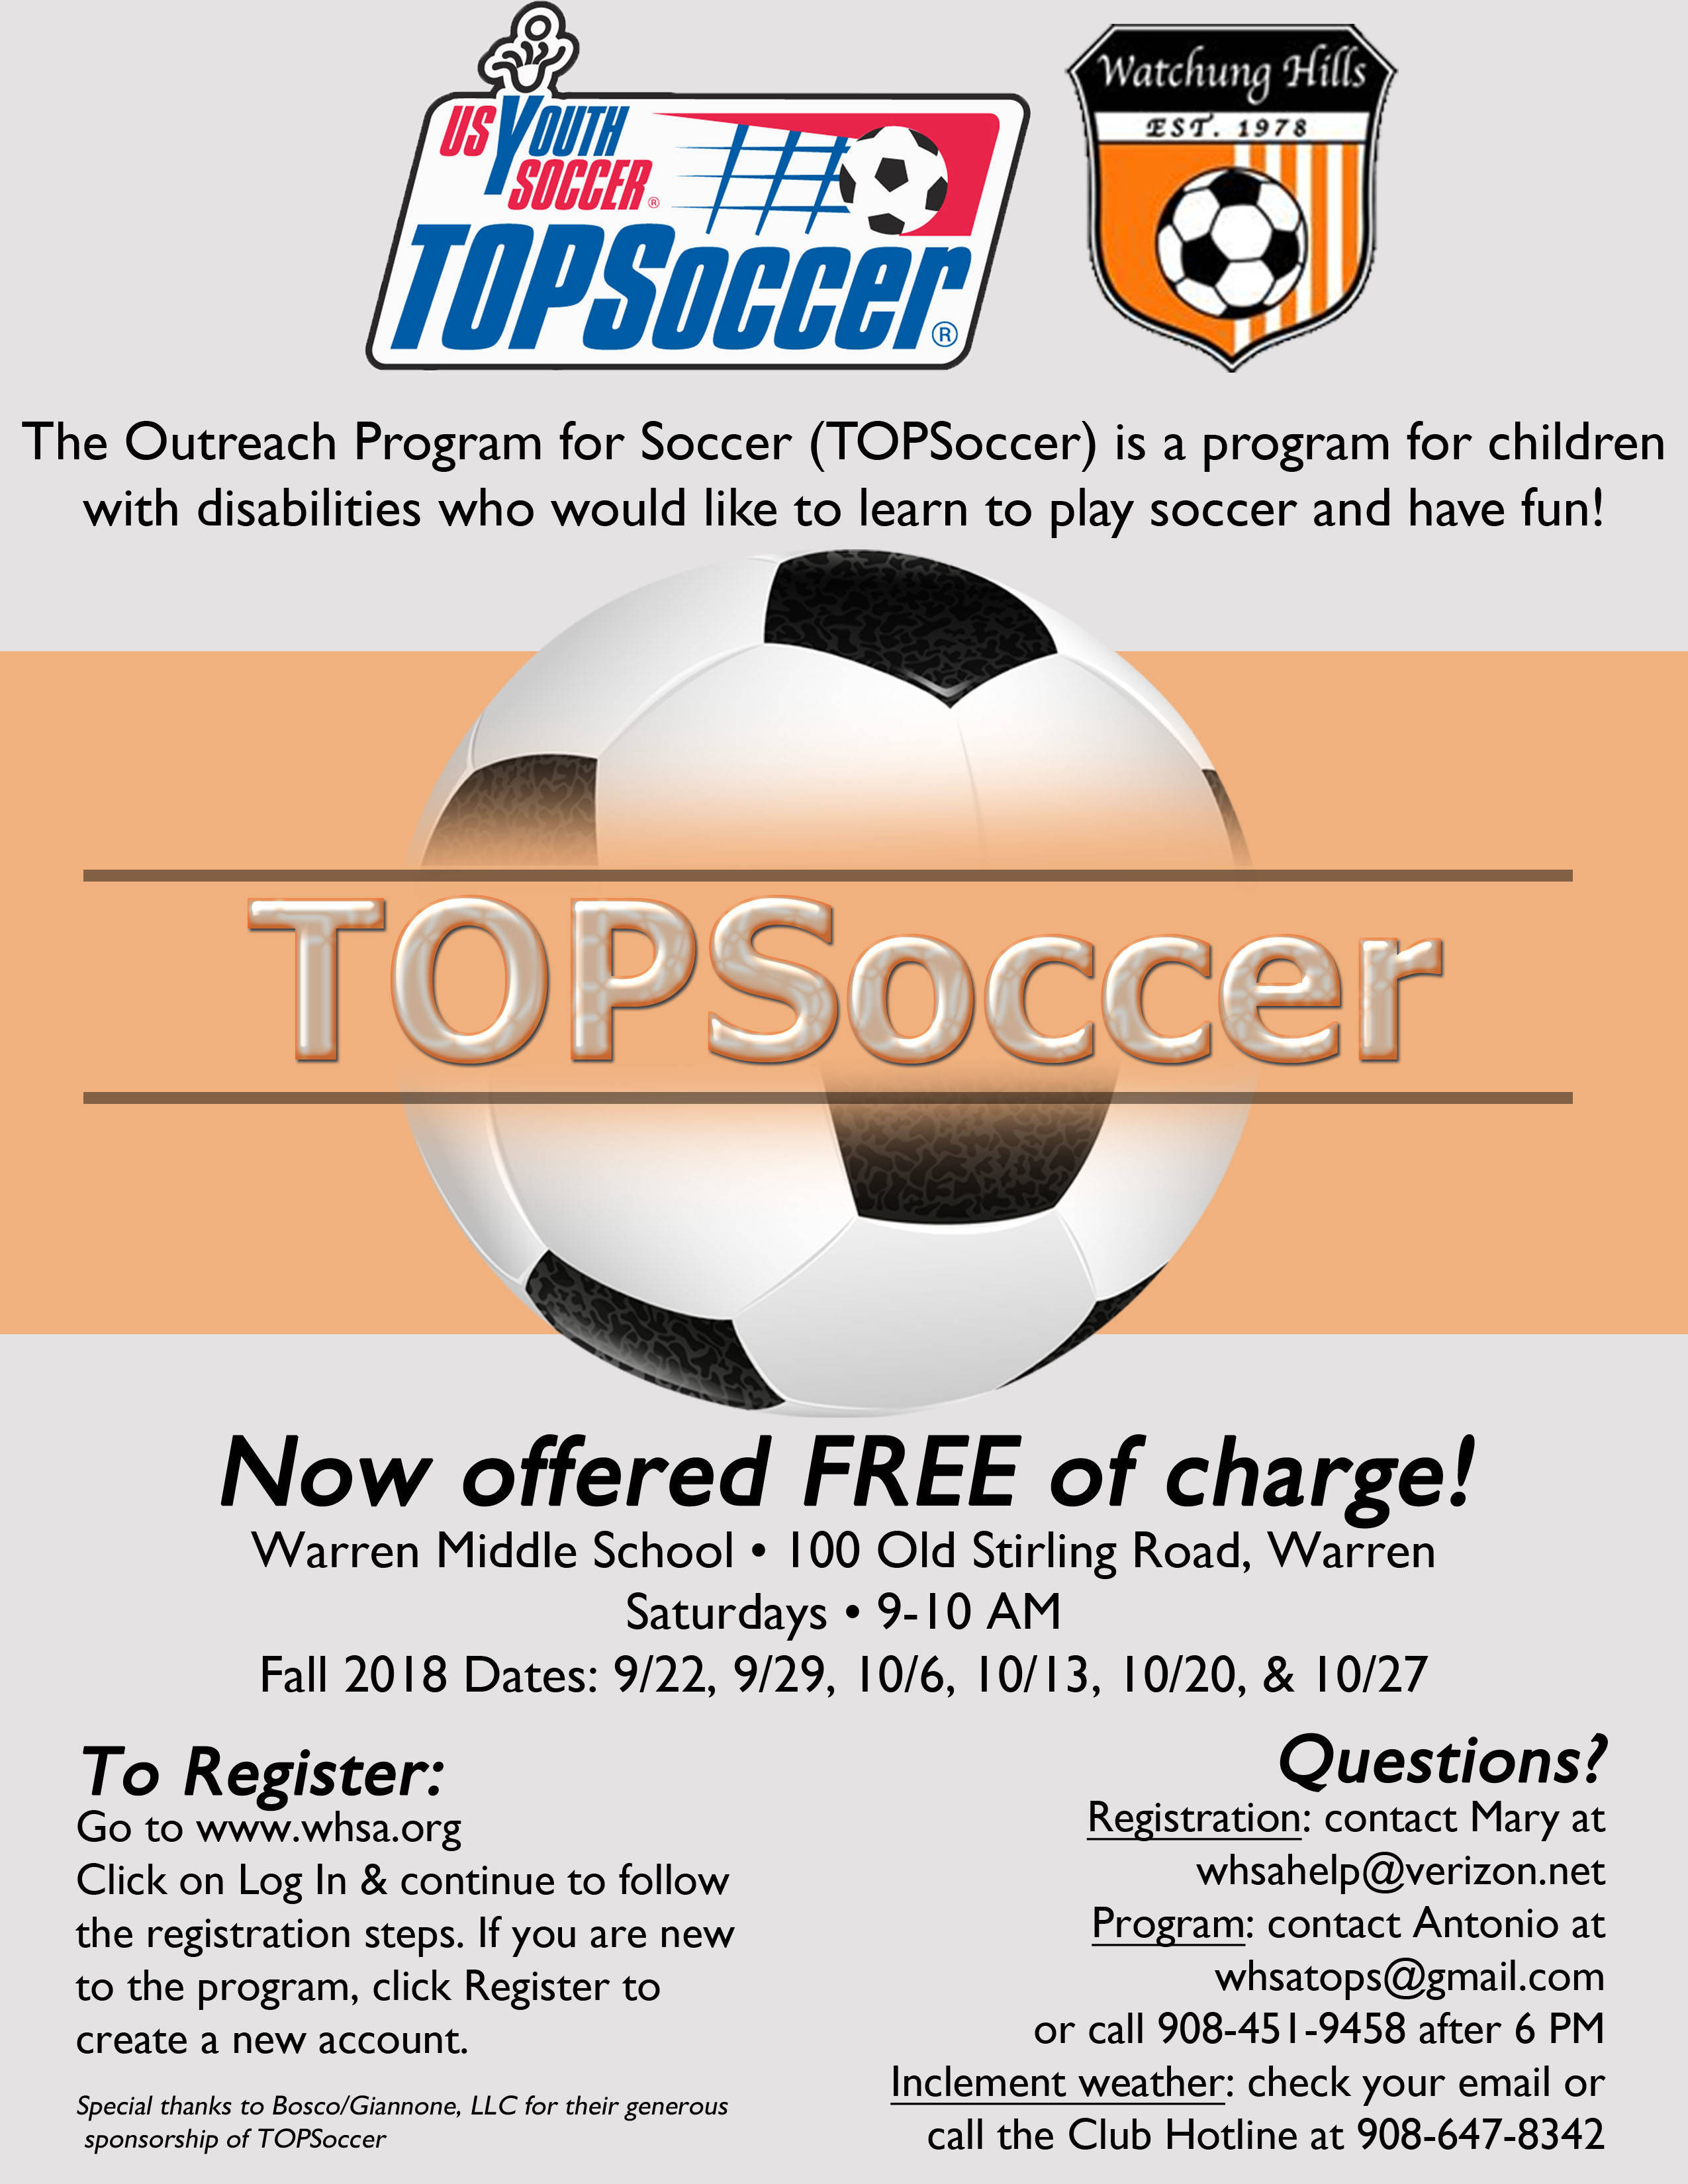 The Outreach Program for Soccer (TOPS) Registration is now open for Fall 2018